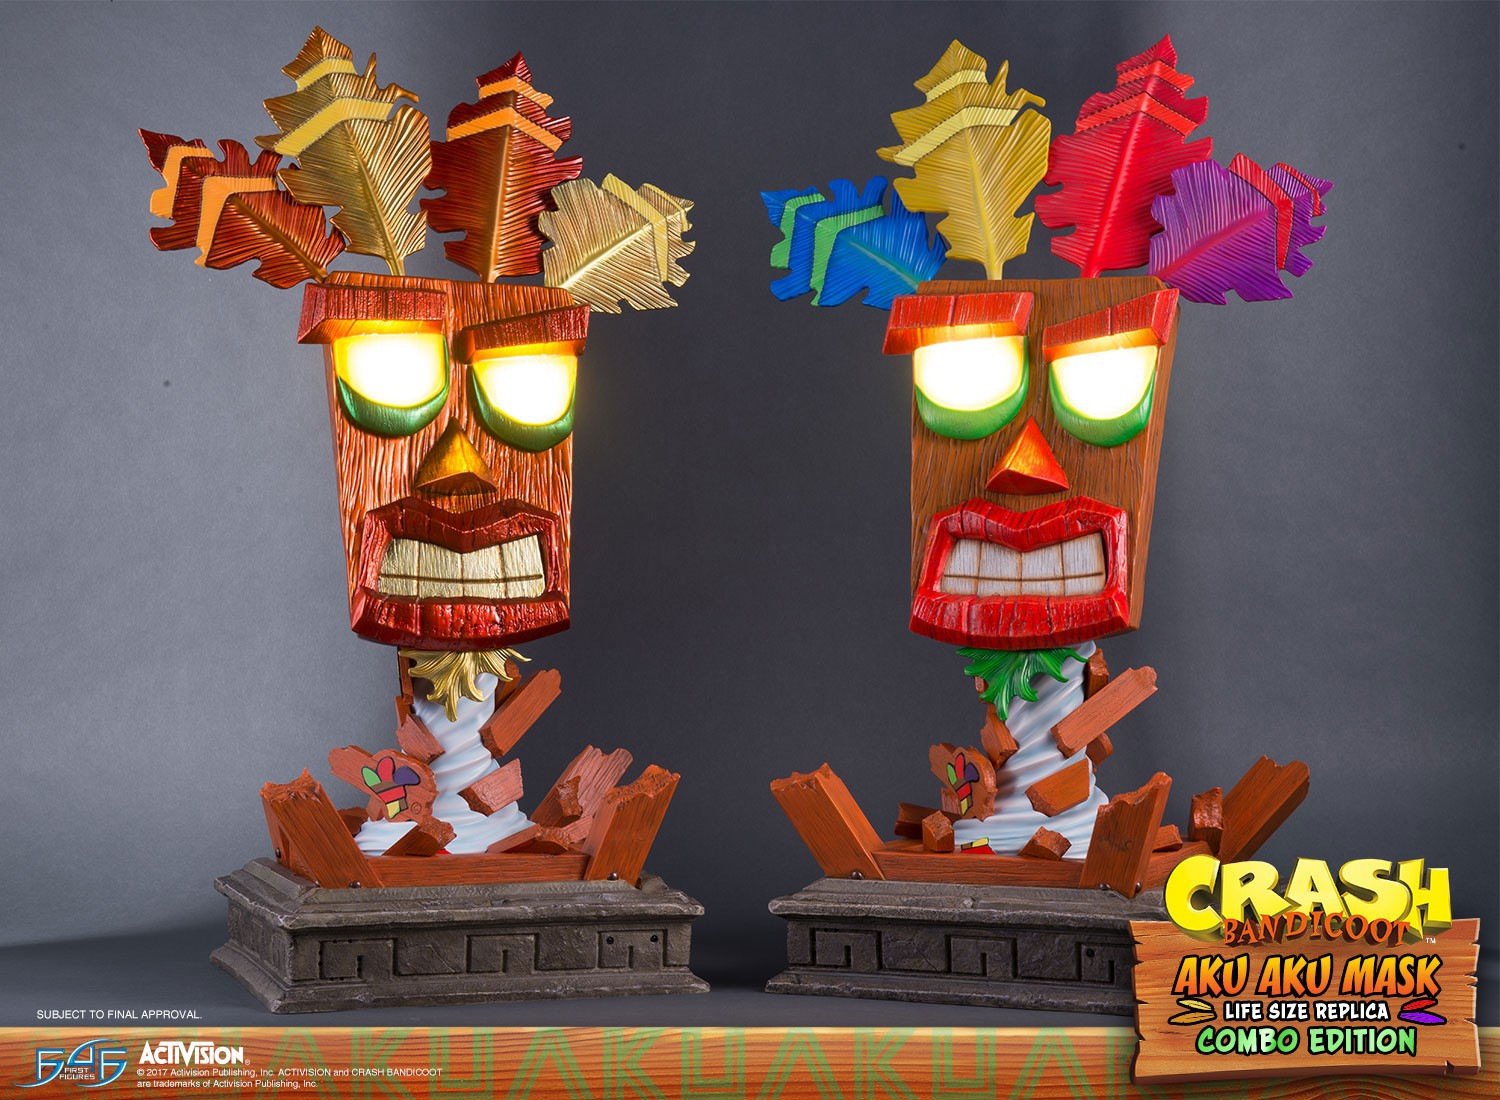 Aku Aku Mask Combo Edition